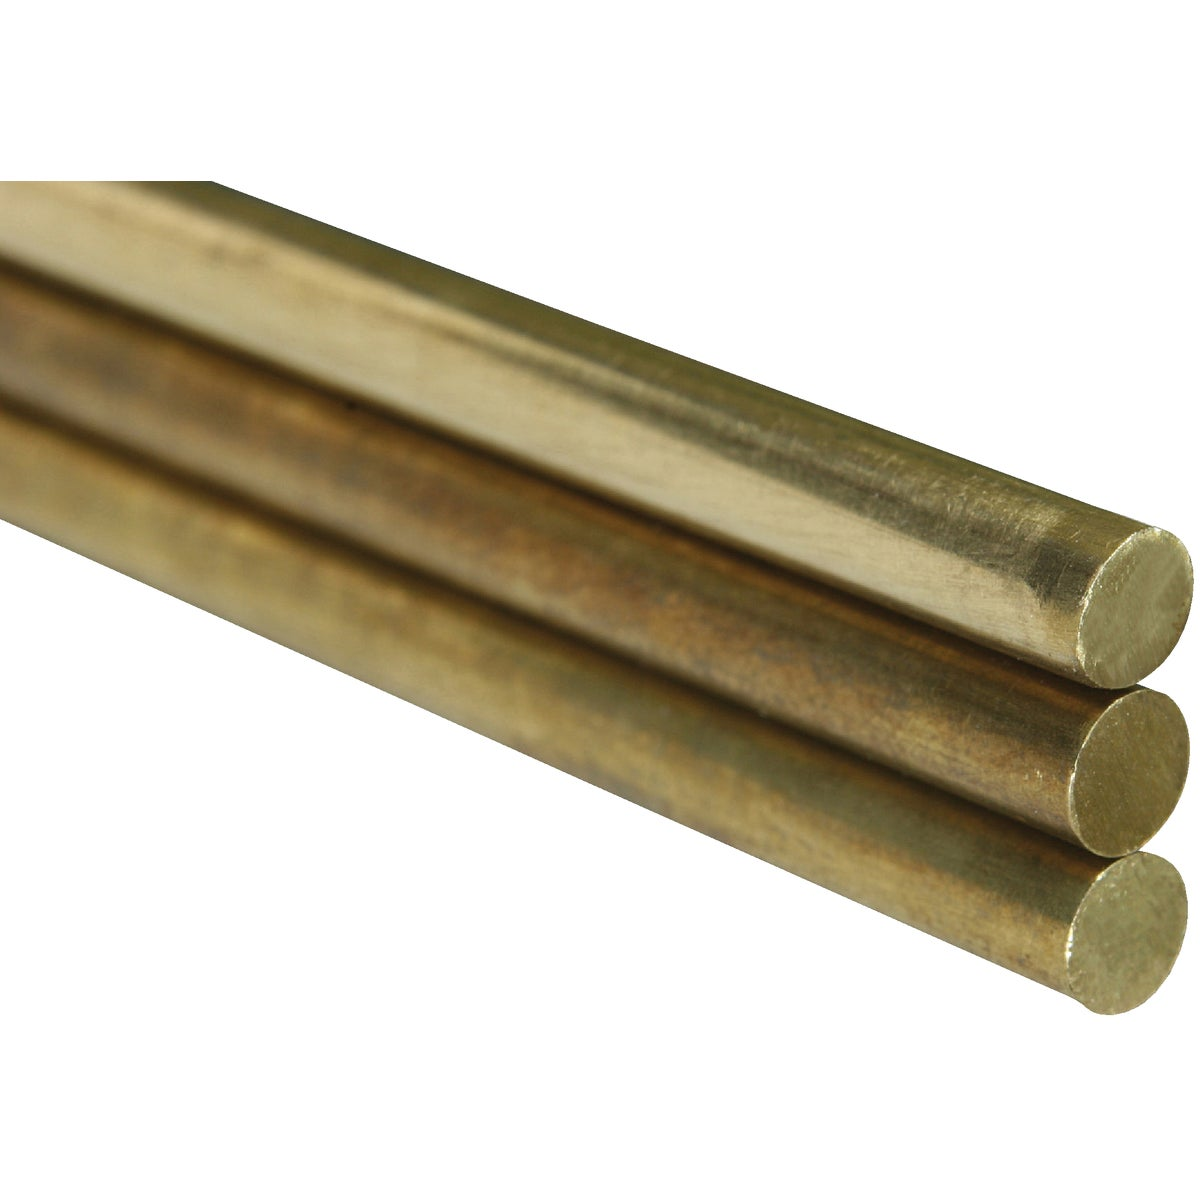 1/32X12 SOLID BRASS ROD - 8160 by K&s Precision Metals